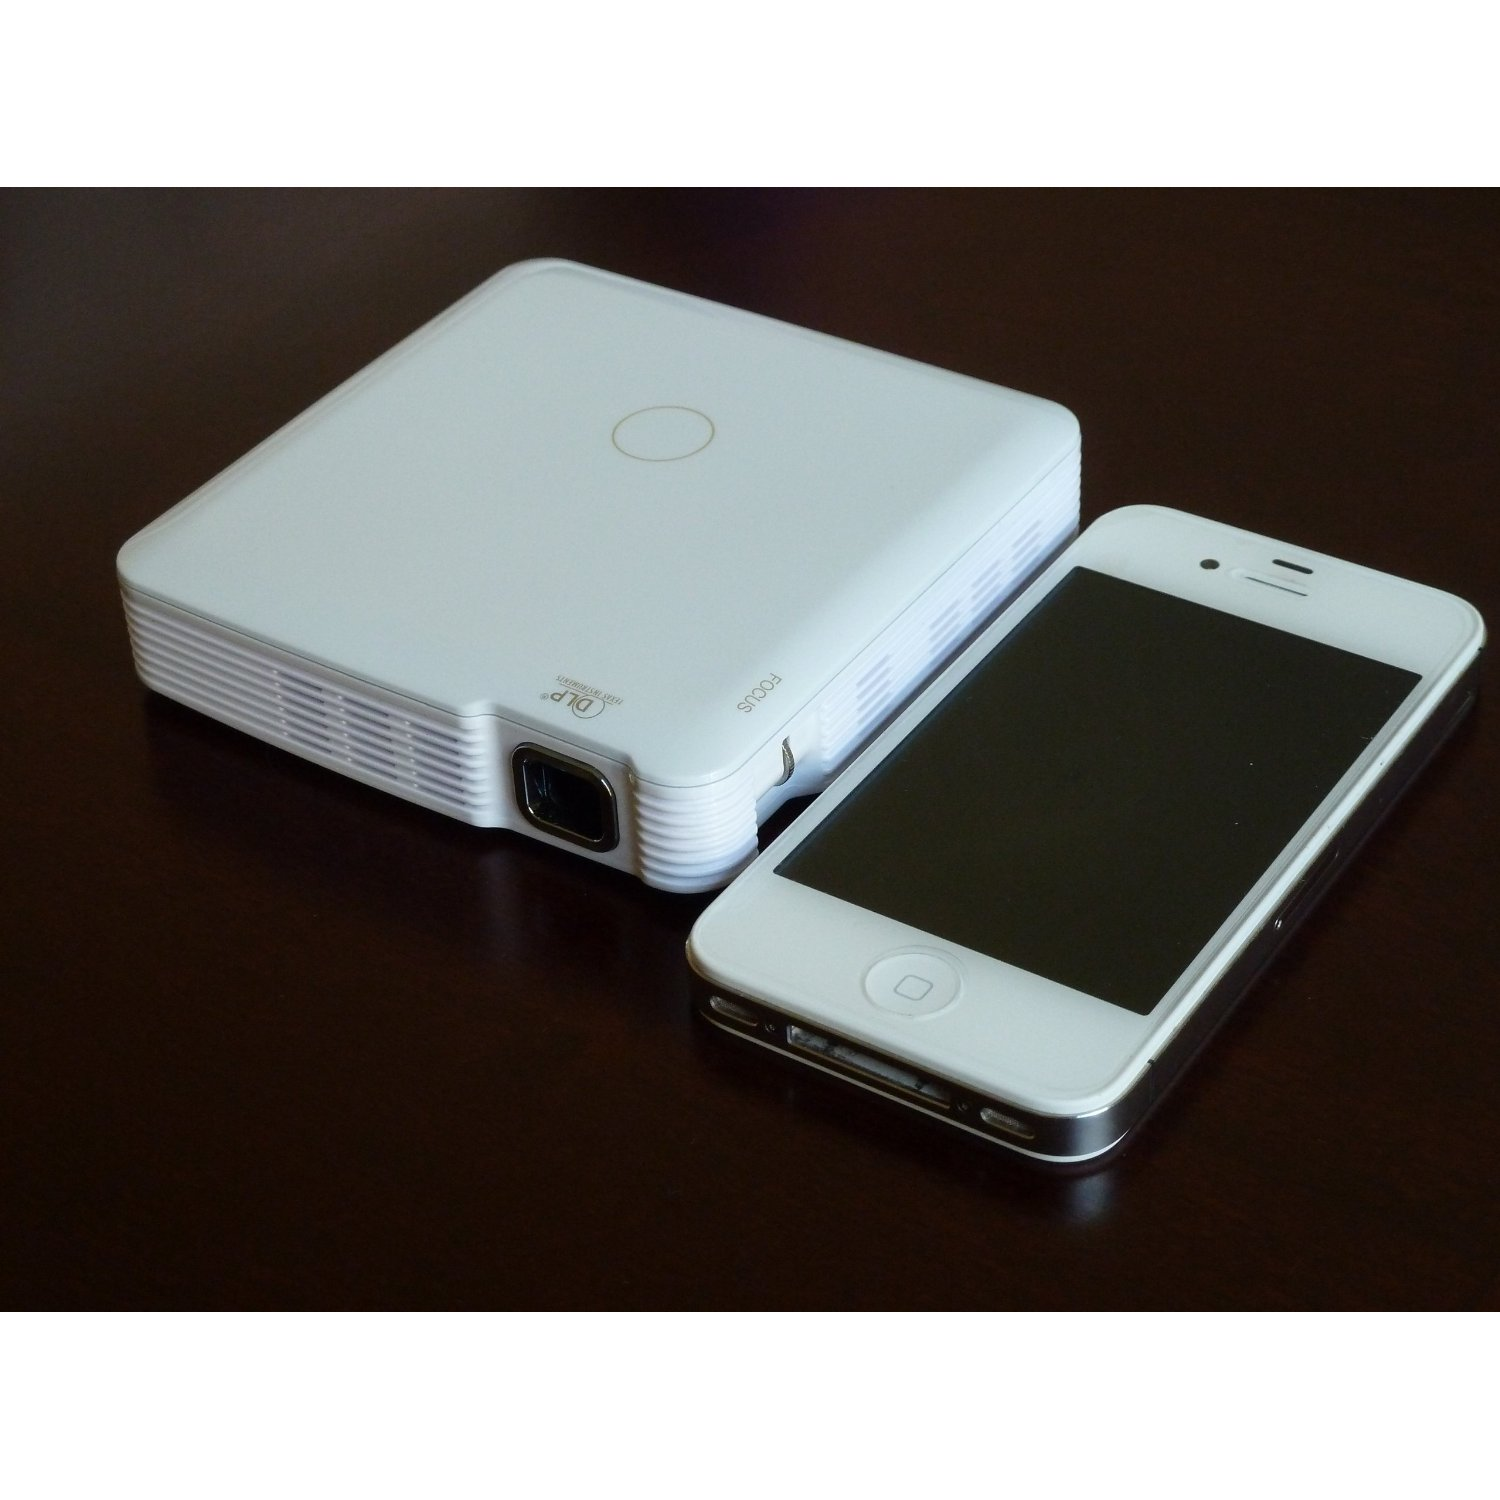 Aliexpress.com : Buy New Telstar MP50 Portable HD mini projector ...